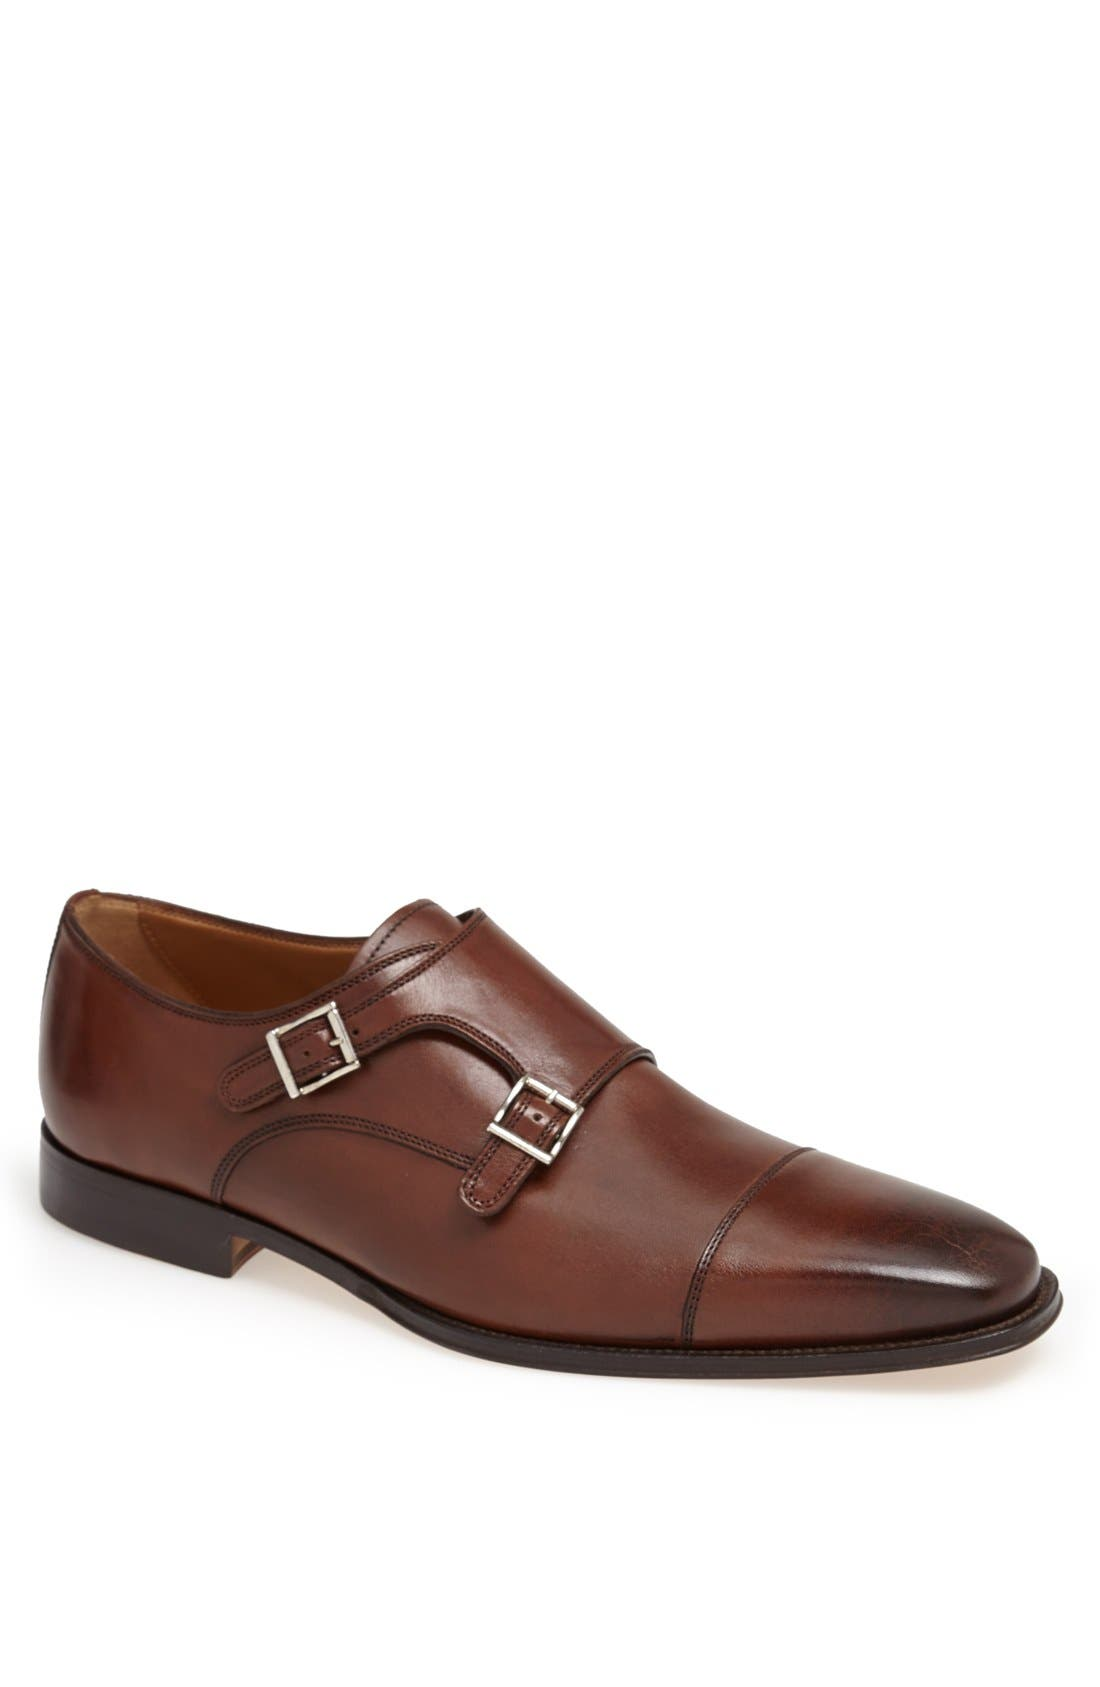 'Classico' Double Monk Strap Slip-On,                         Main,                         color, Brown